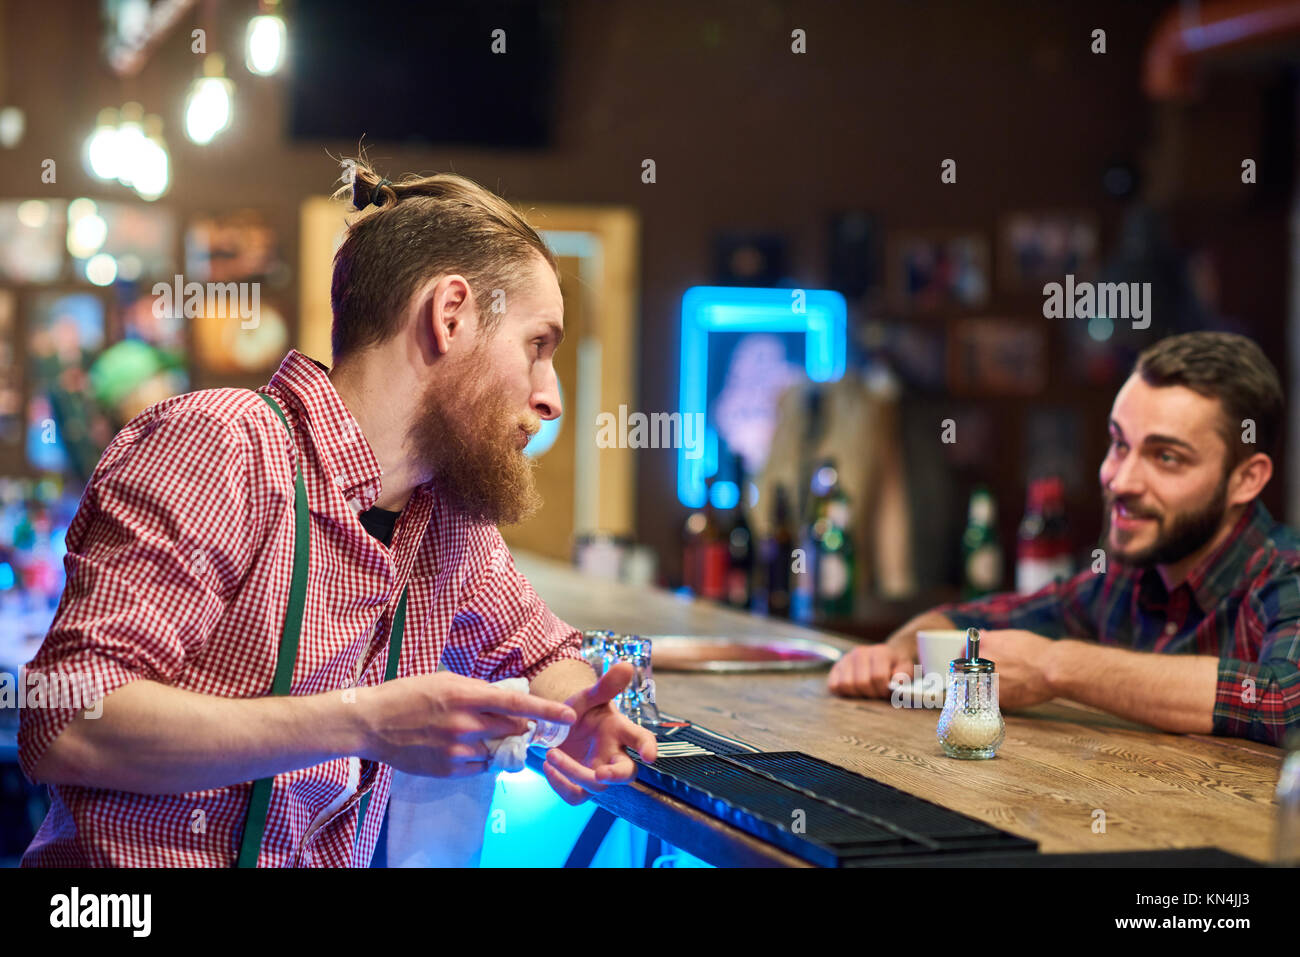 Bartender Talking to Visitor at Pub Counter - Stock Image